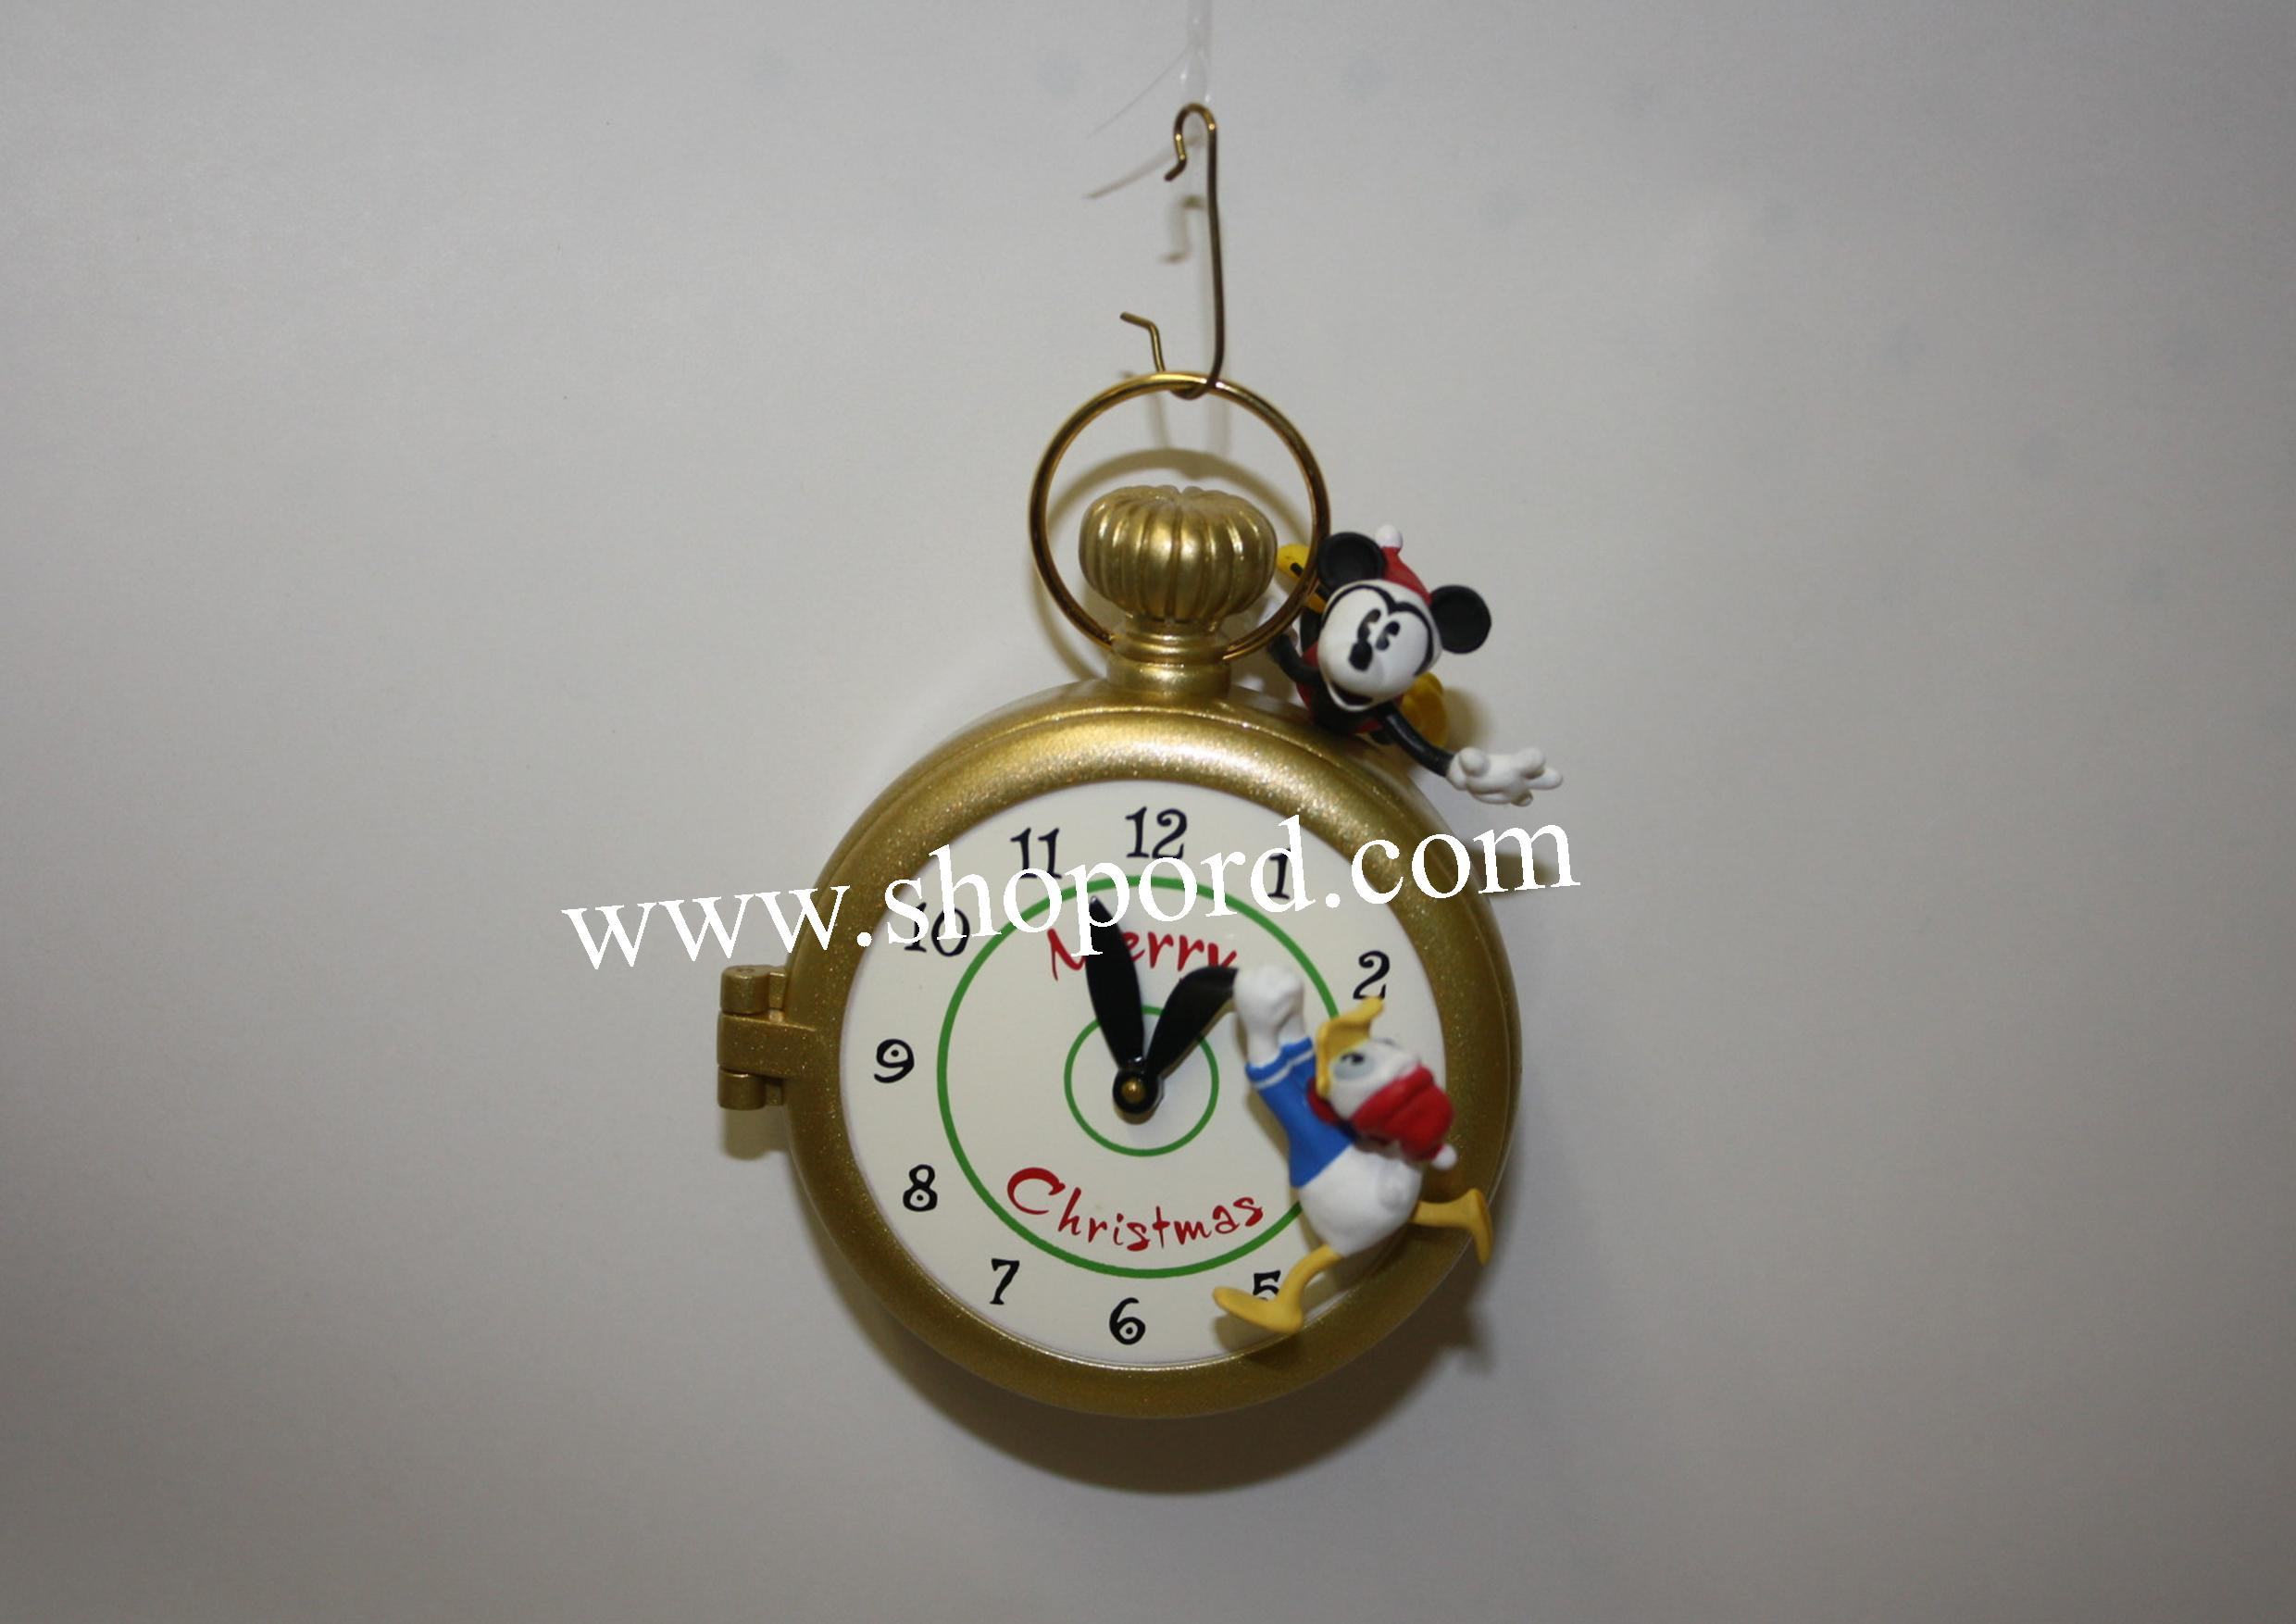 Hallmark 2002 Goffy Clockworks Disney Ornament QXD4923